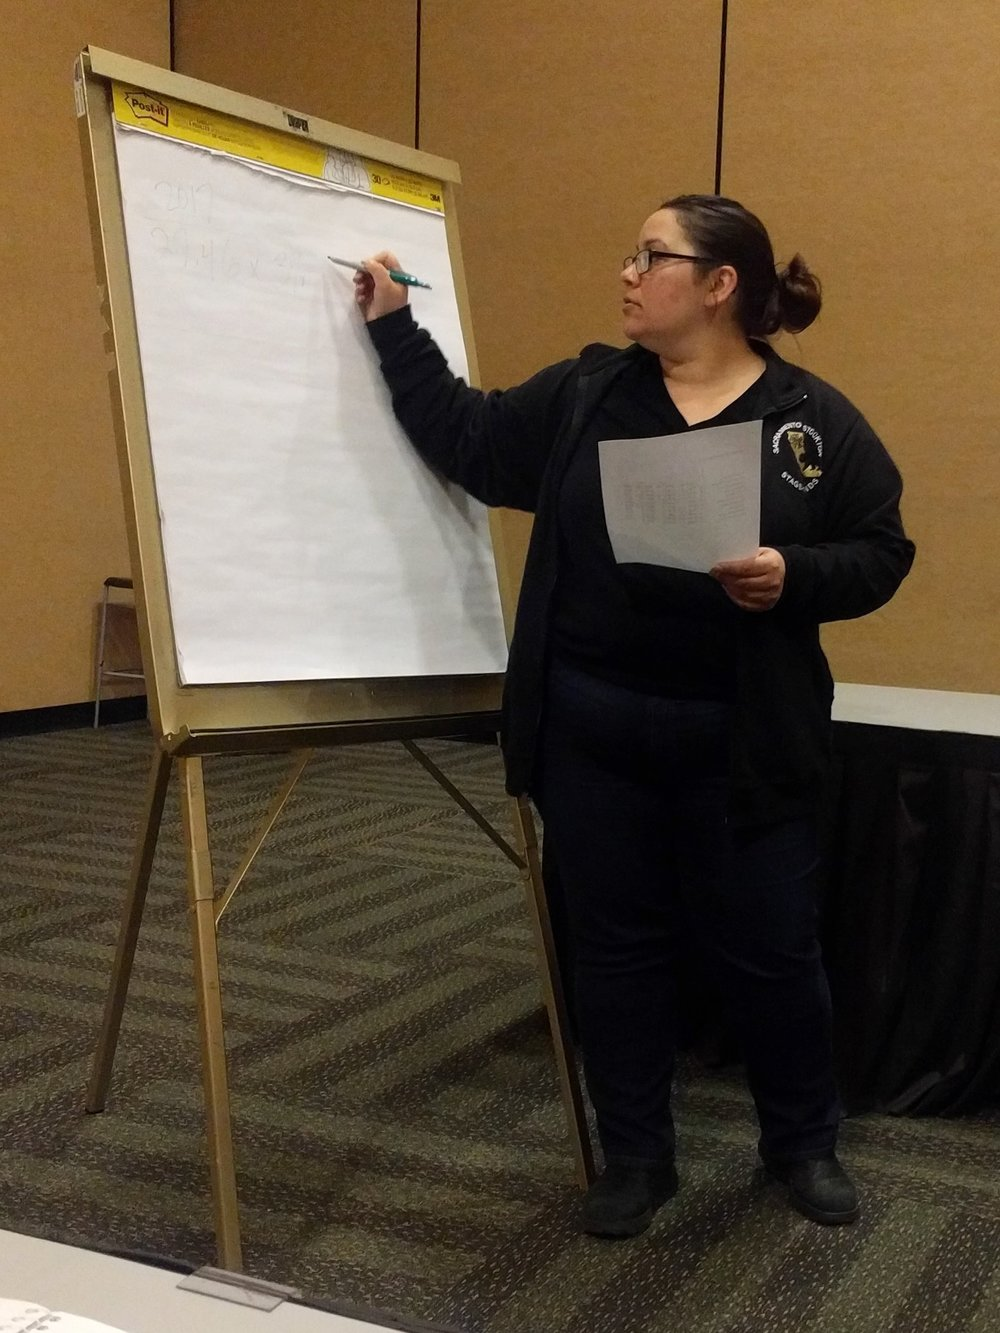 IATSE TTF Train the Trainer: Teaching Techniques and Presentation Skills in San Francisco, CA | April 8 & 9, 2017